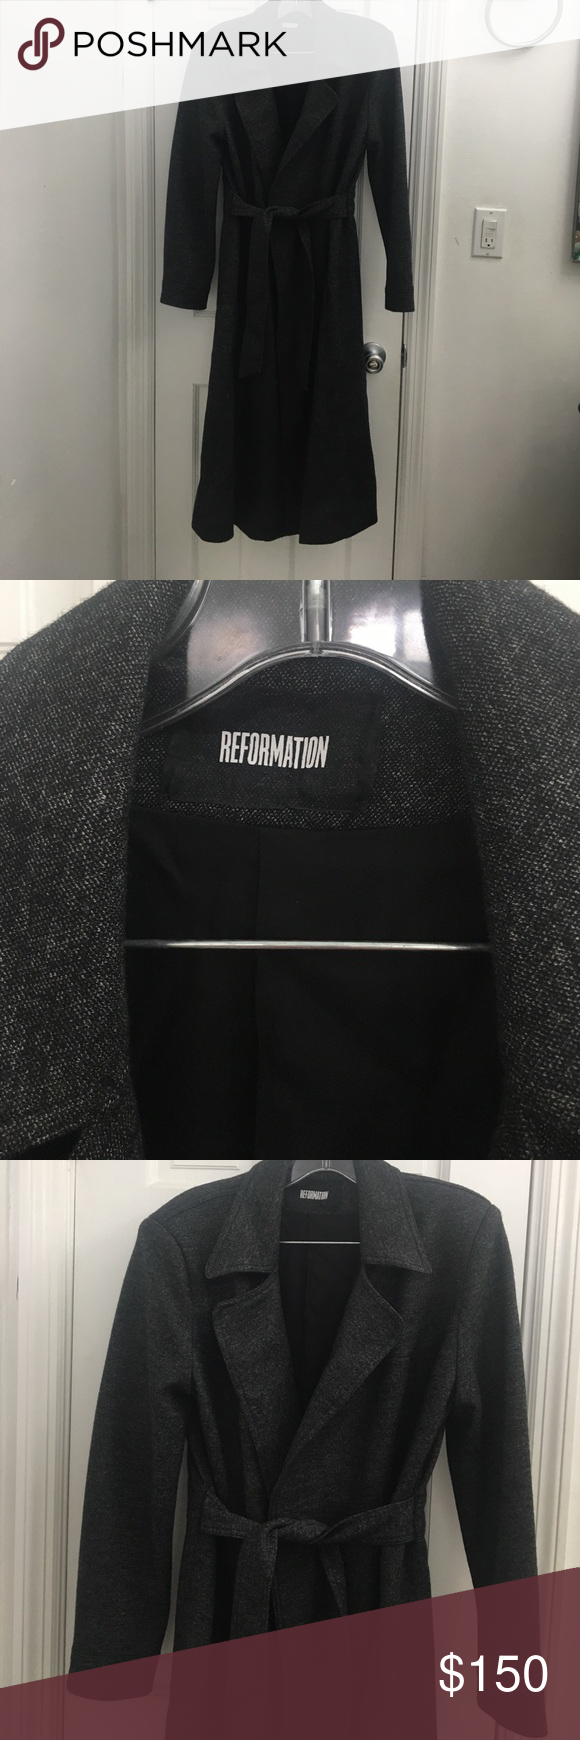 NWOT *REPOSH* Reformation grey trench coat I'm reselling this gorgeous coat because it is just too long for me. I'm 5'5. Brand new never worn, comes with garment bag.  Shoulder to shoulder 15 inches, length from shoulder to hem 43.5 inches Reformation Jackets & Coats Trench Coats